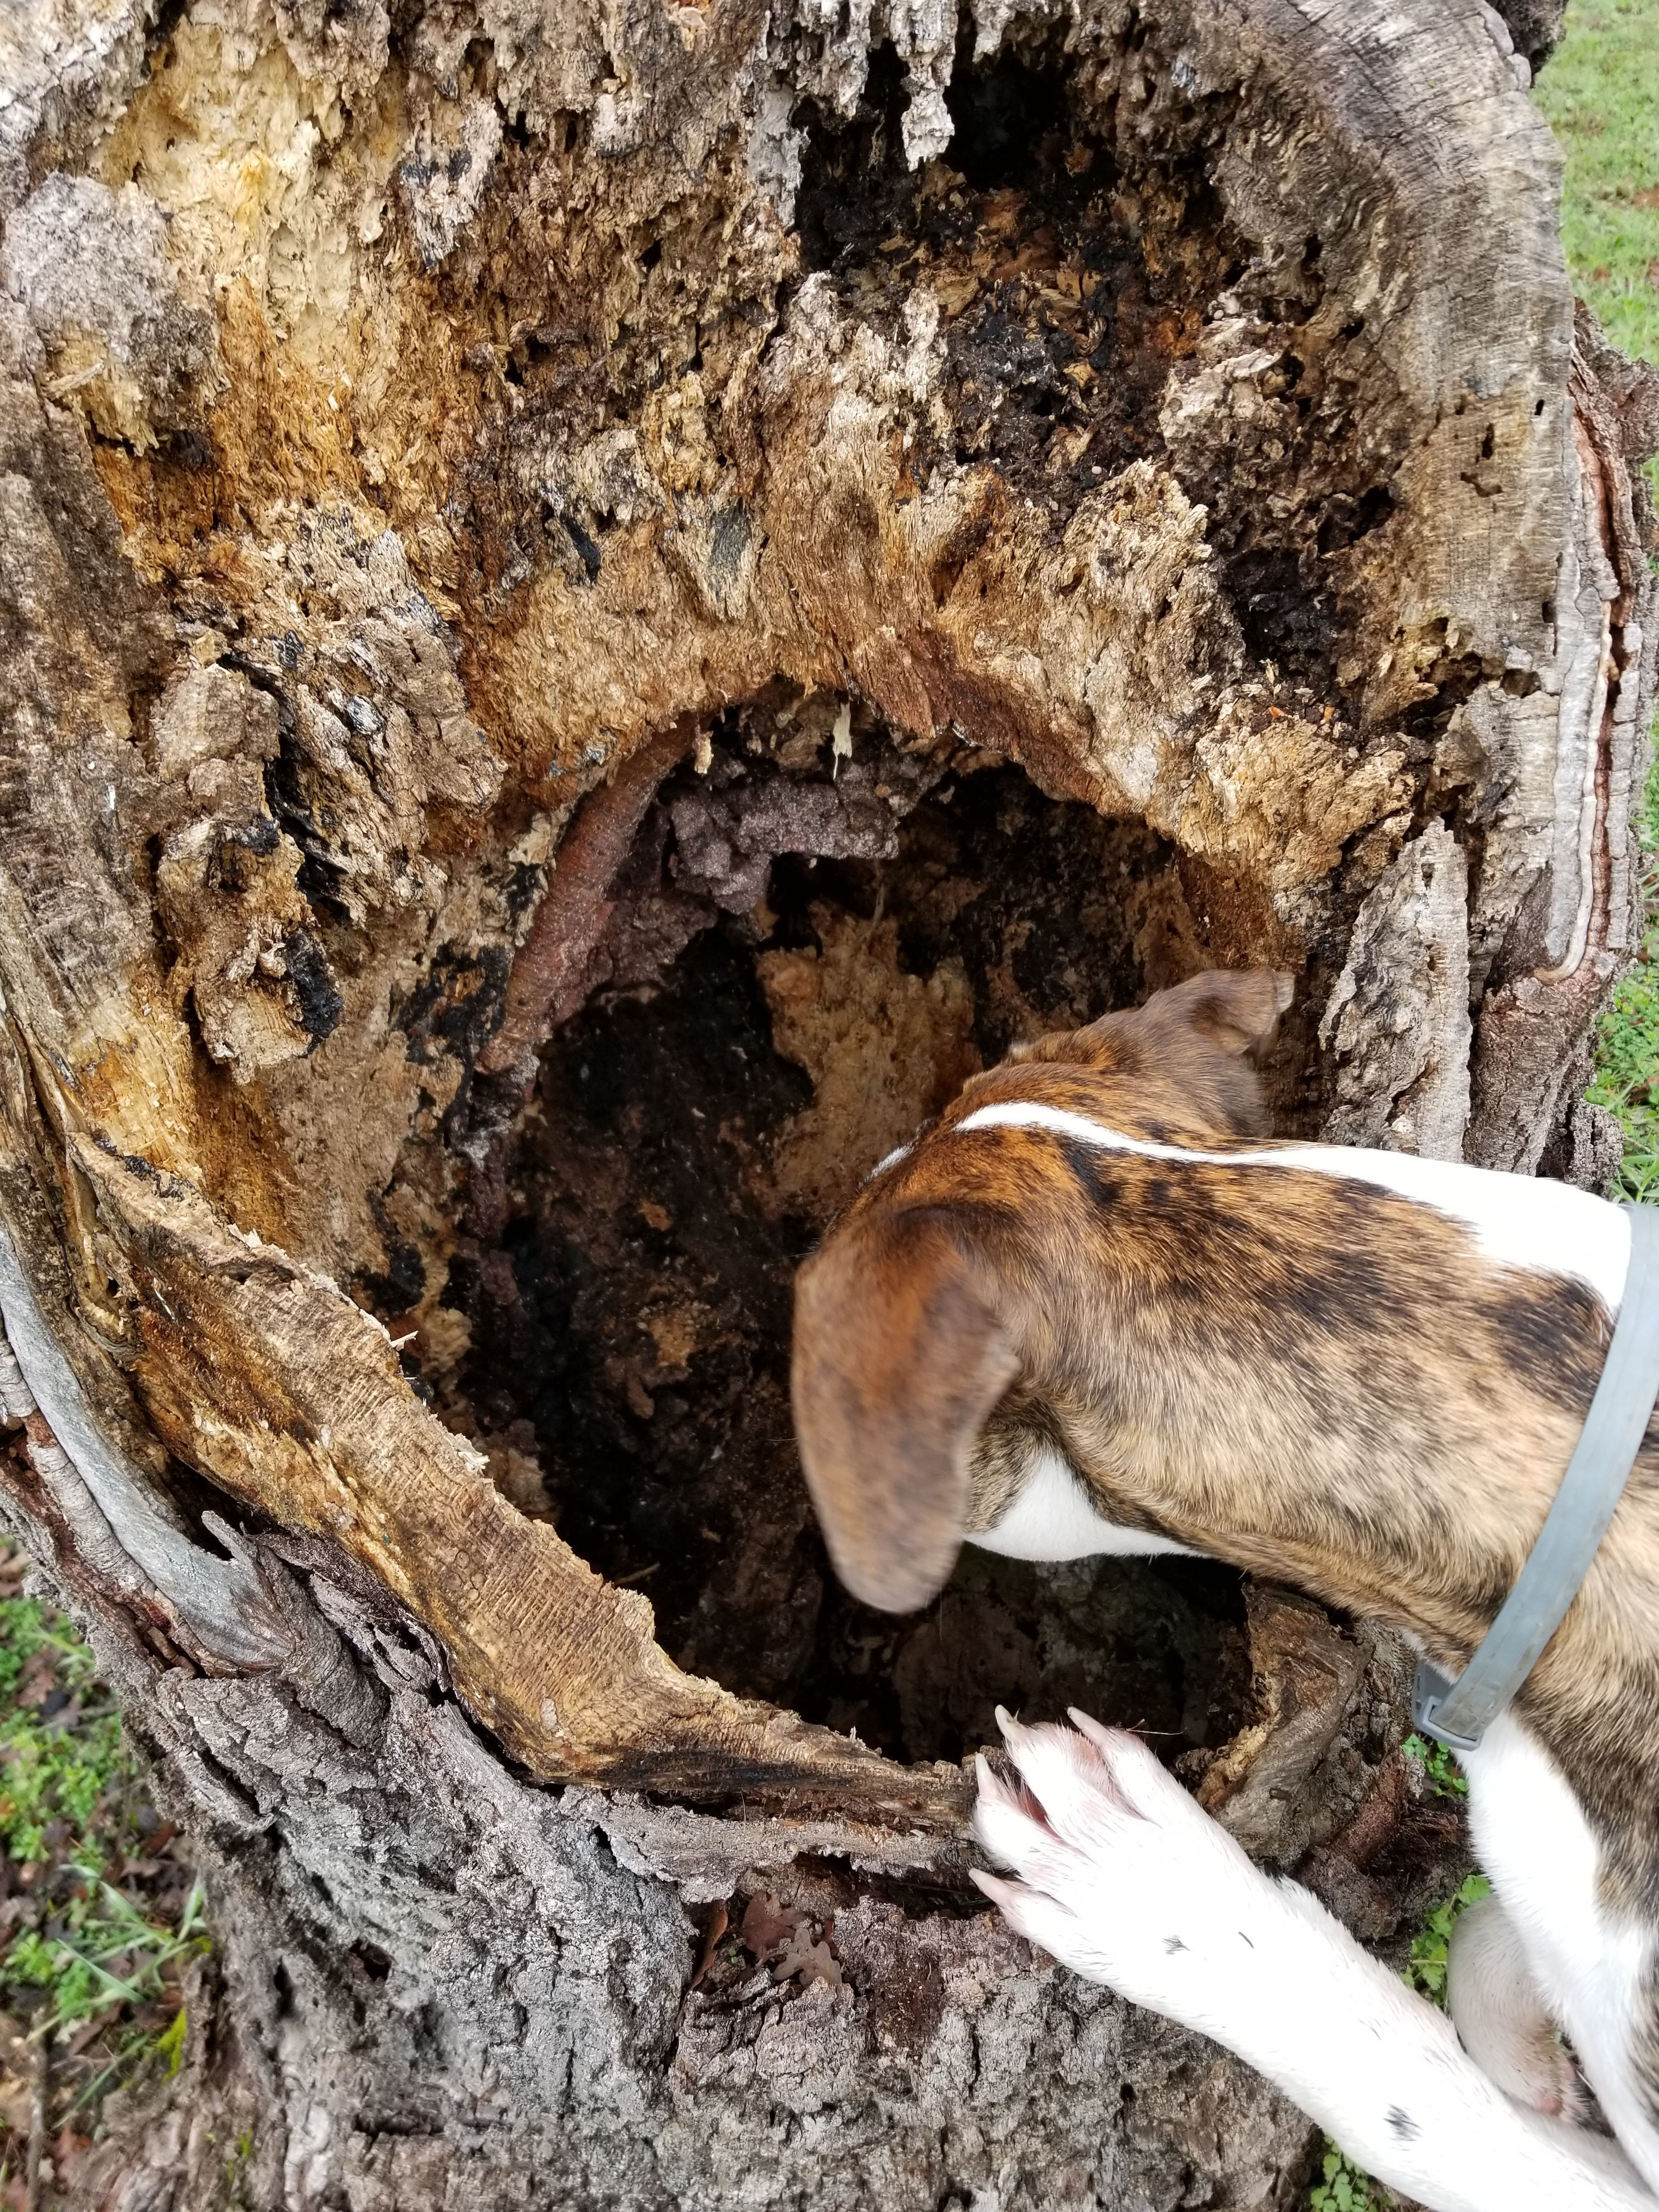 dog and tree stump